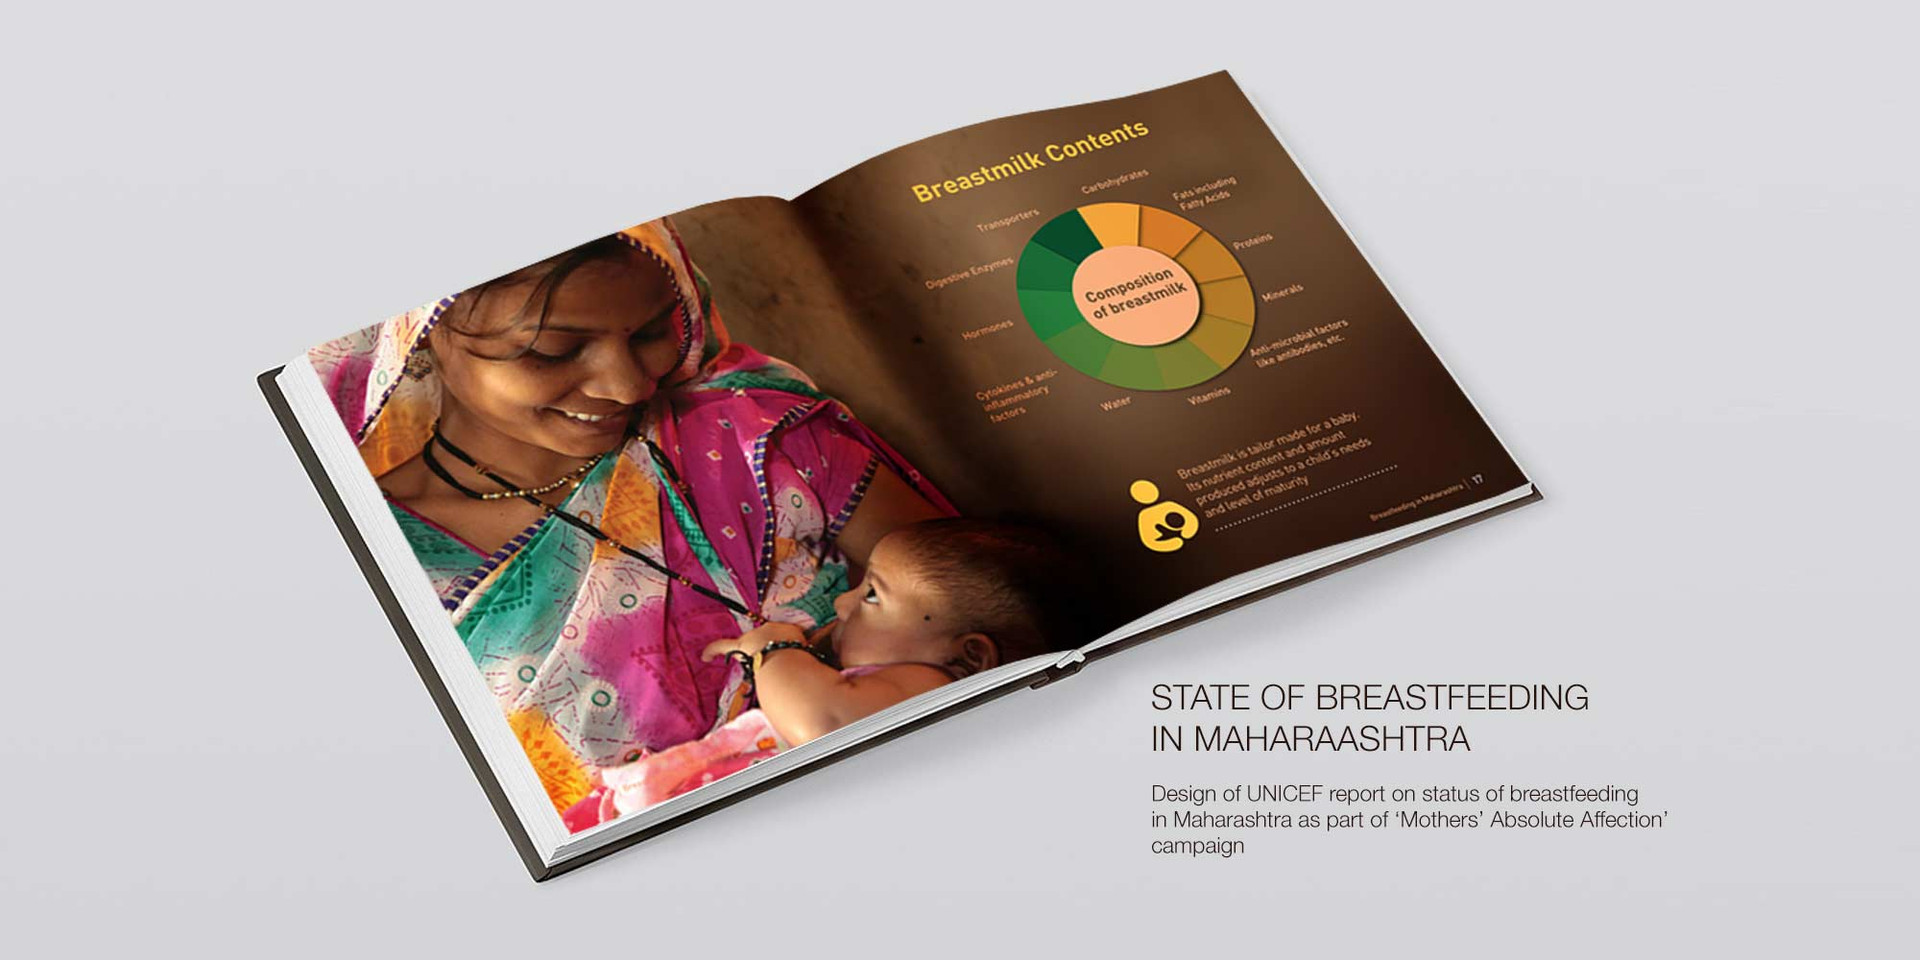 State of Breastfeeding in Maharashtra